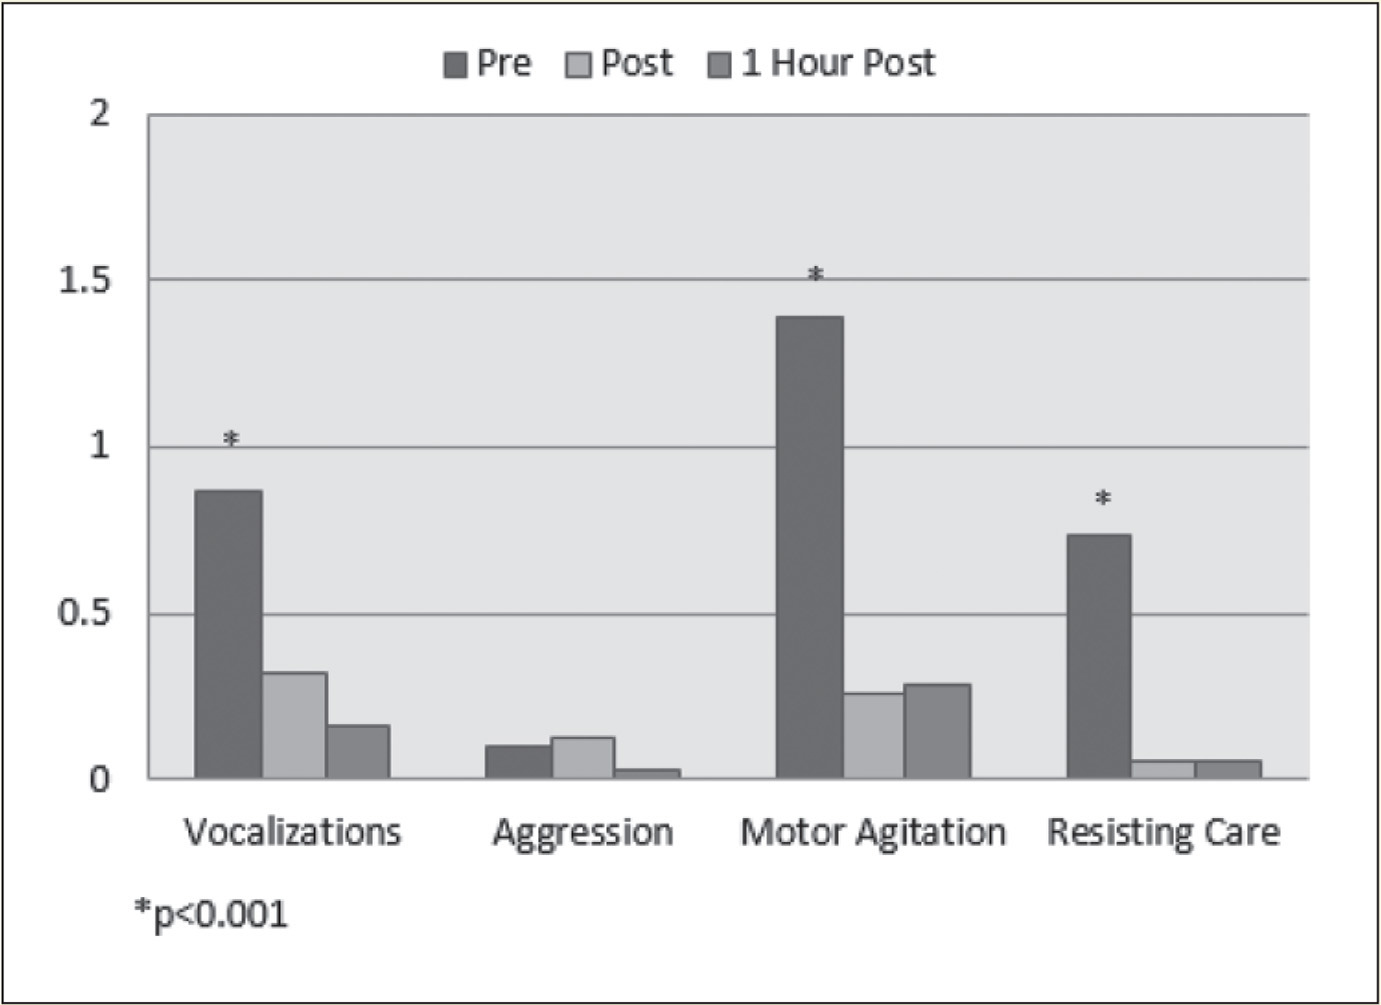 Pittsburgh Agitation Scale subscale scores.